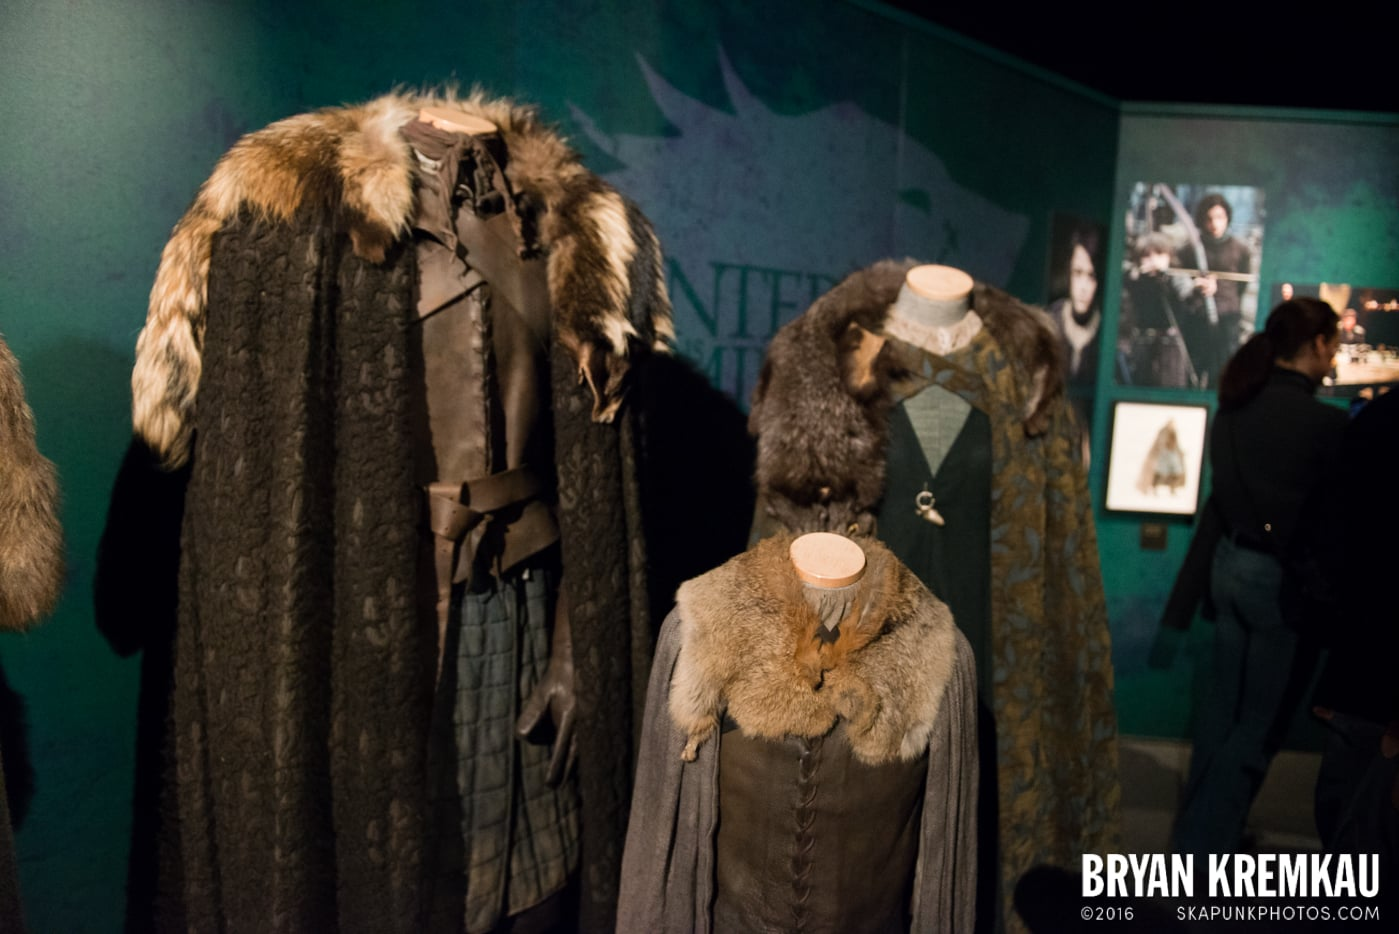 Game Of Thrones Exhibition @ New York, NY - 3.29.13 (38)